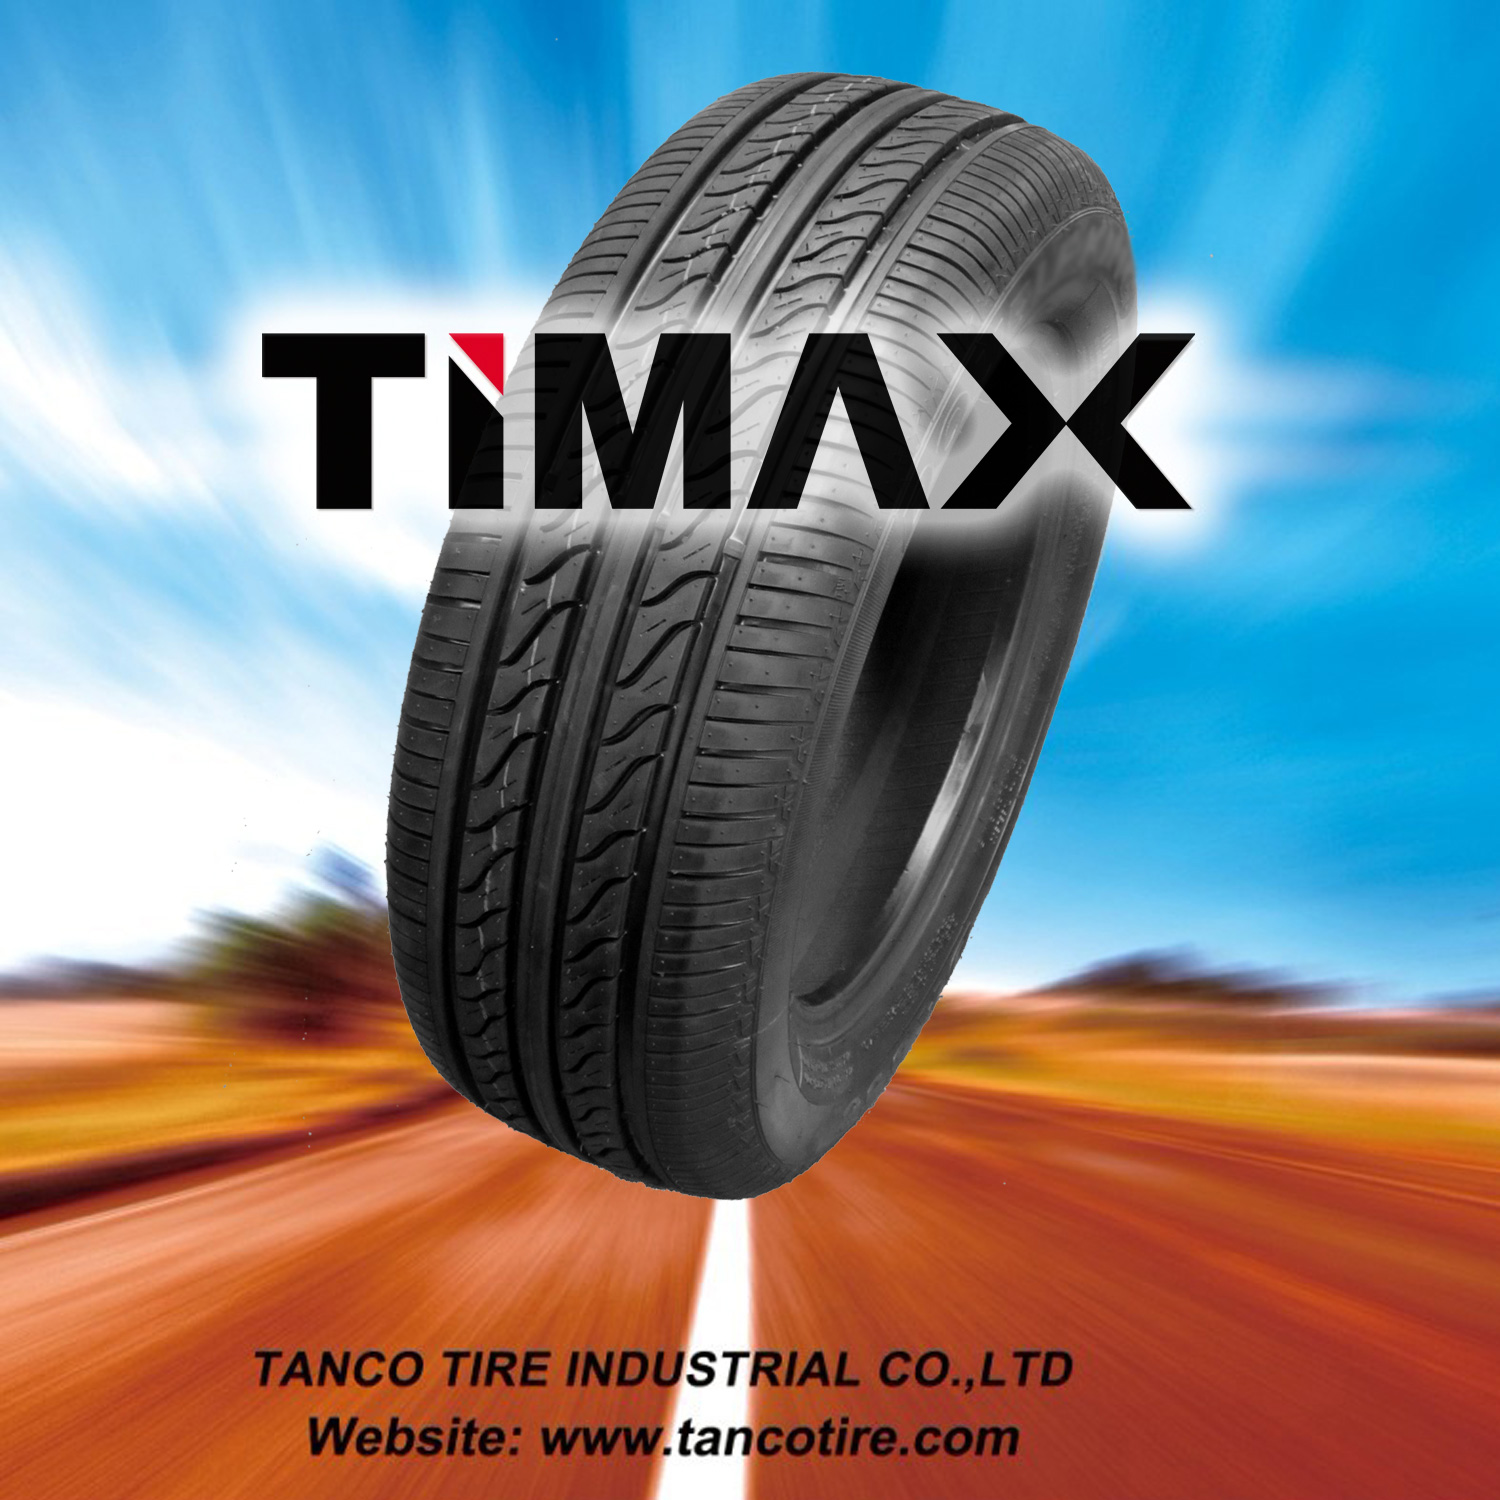 Tanco Tire,Timax Tyre Array image32